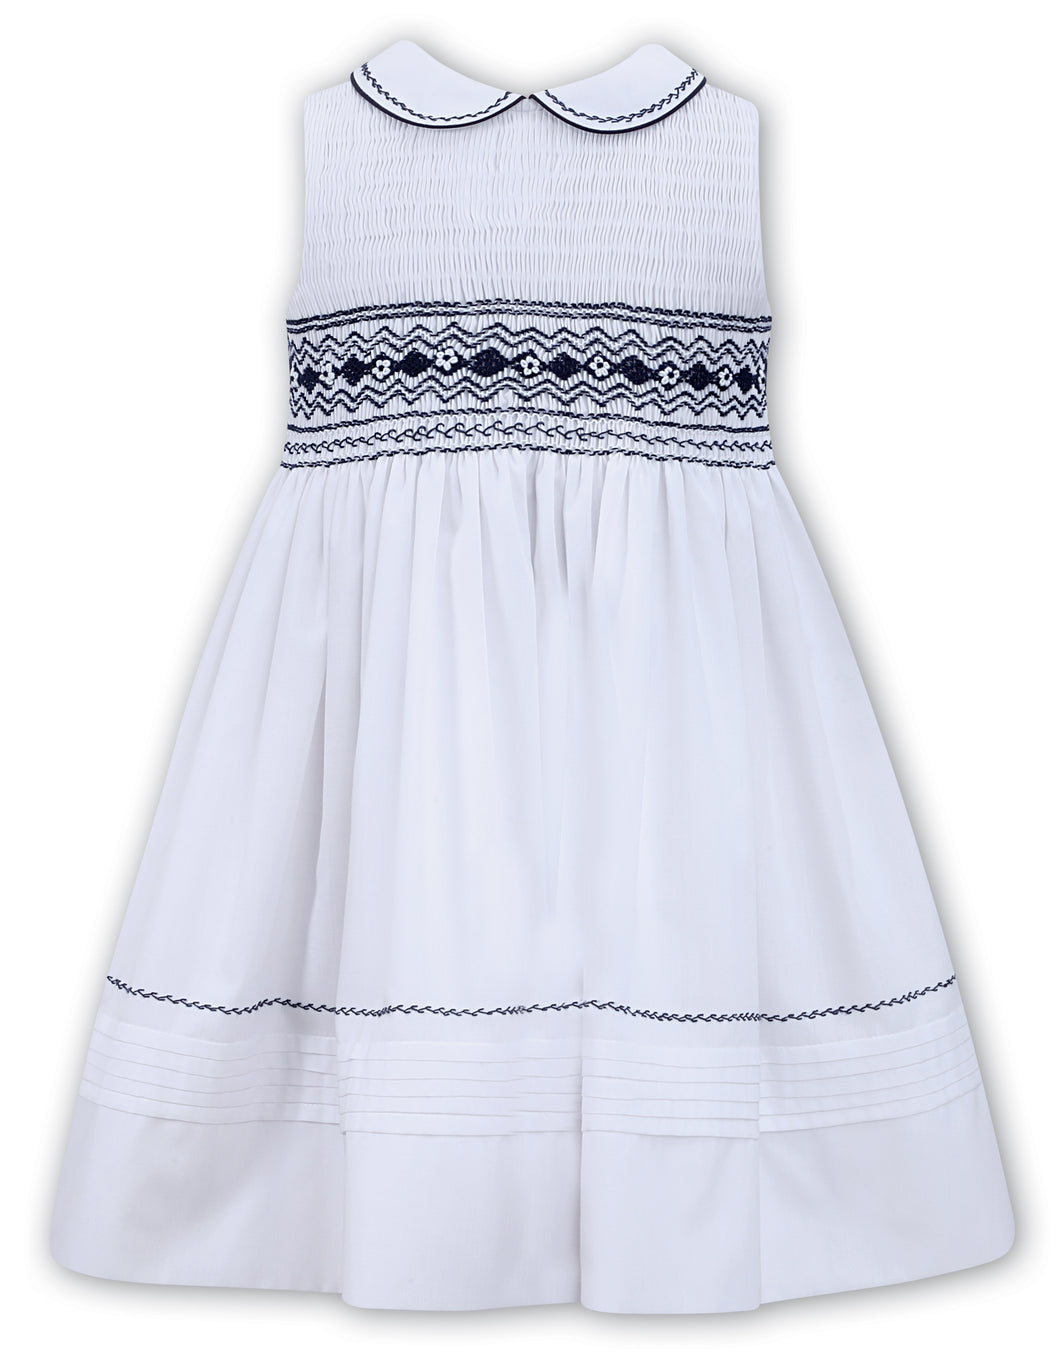 White, navy accented, sleeveless dress